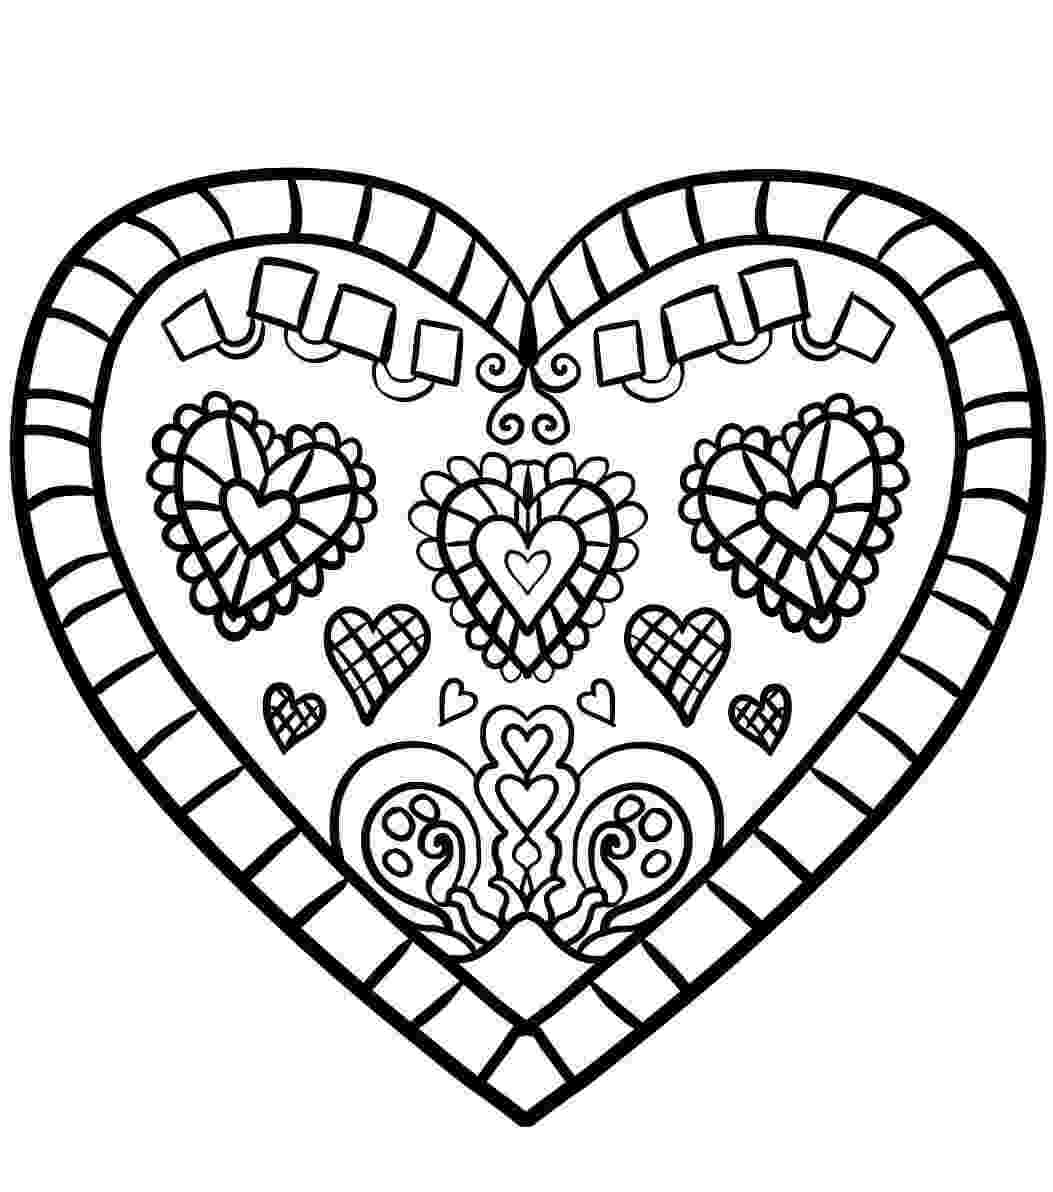 heart coloring pages free printable heart coloring pages for kids coloring pages heart